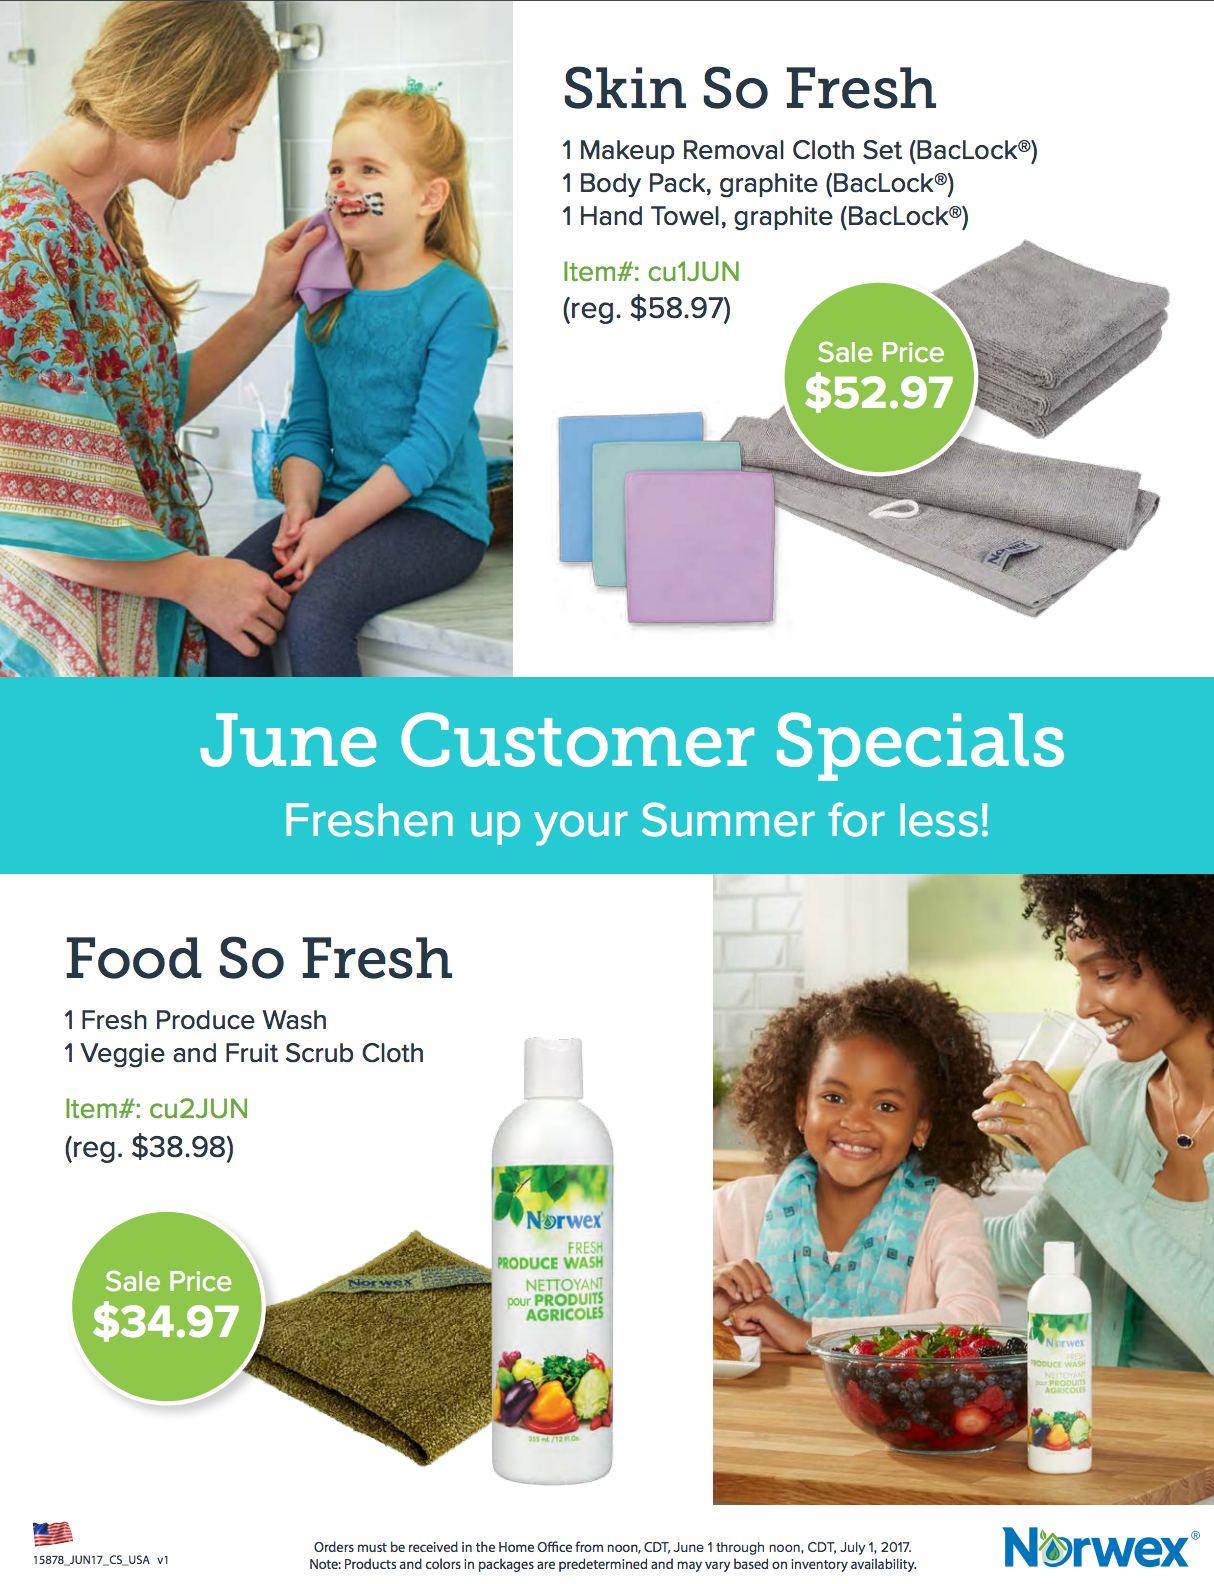 Norwex Hostess Gifts and Customer Specials for June, 2017